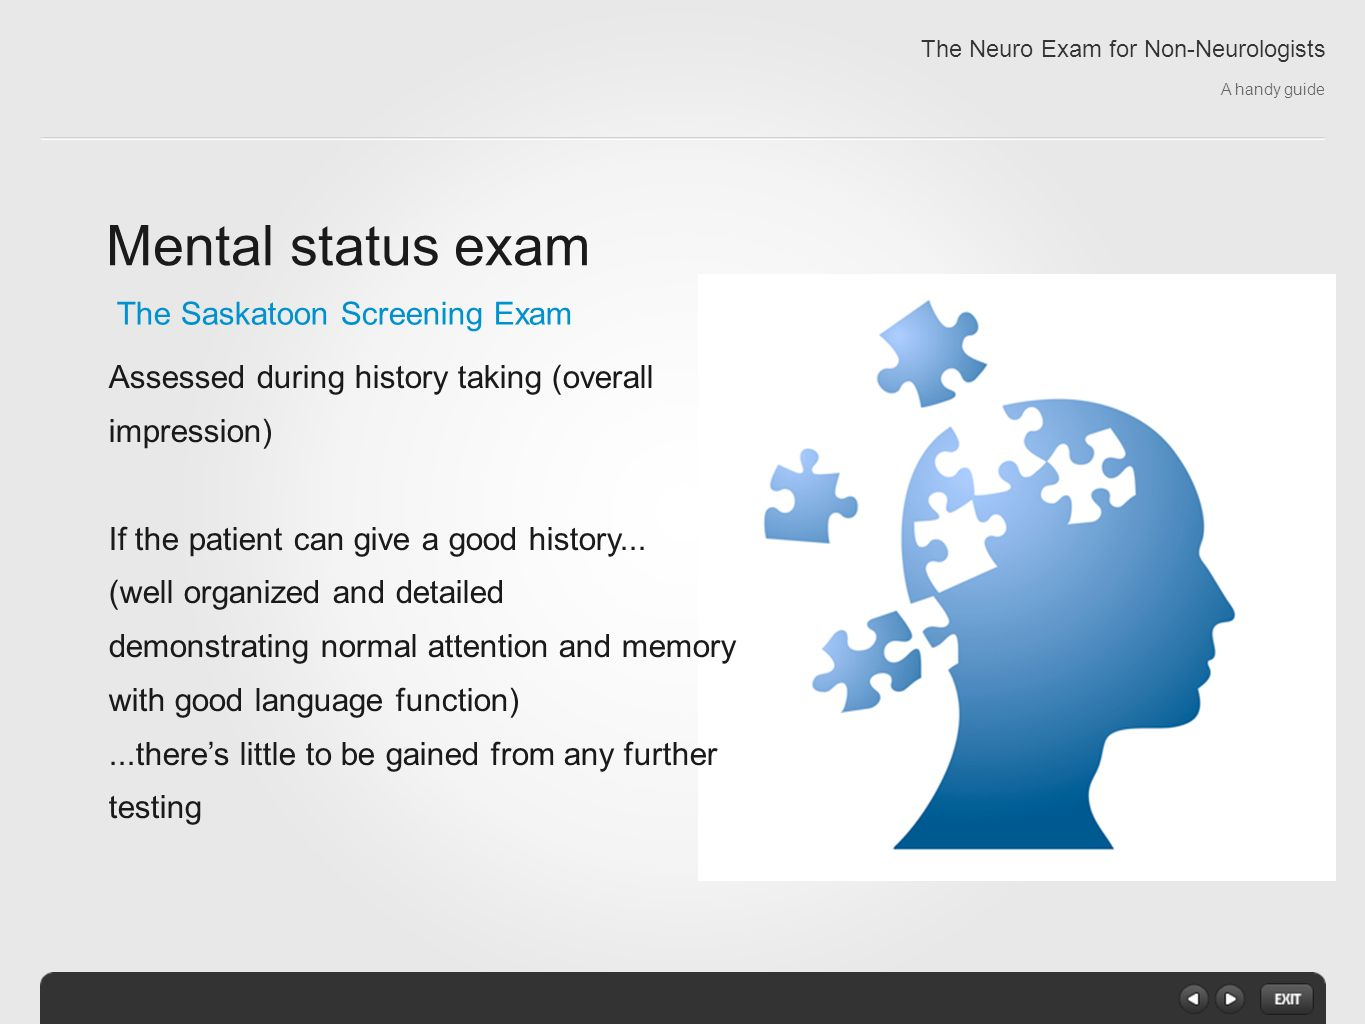 The Neuro Exam for Non-Neurologists A handy guide - ppt ...